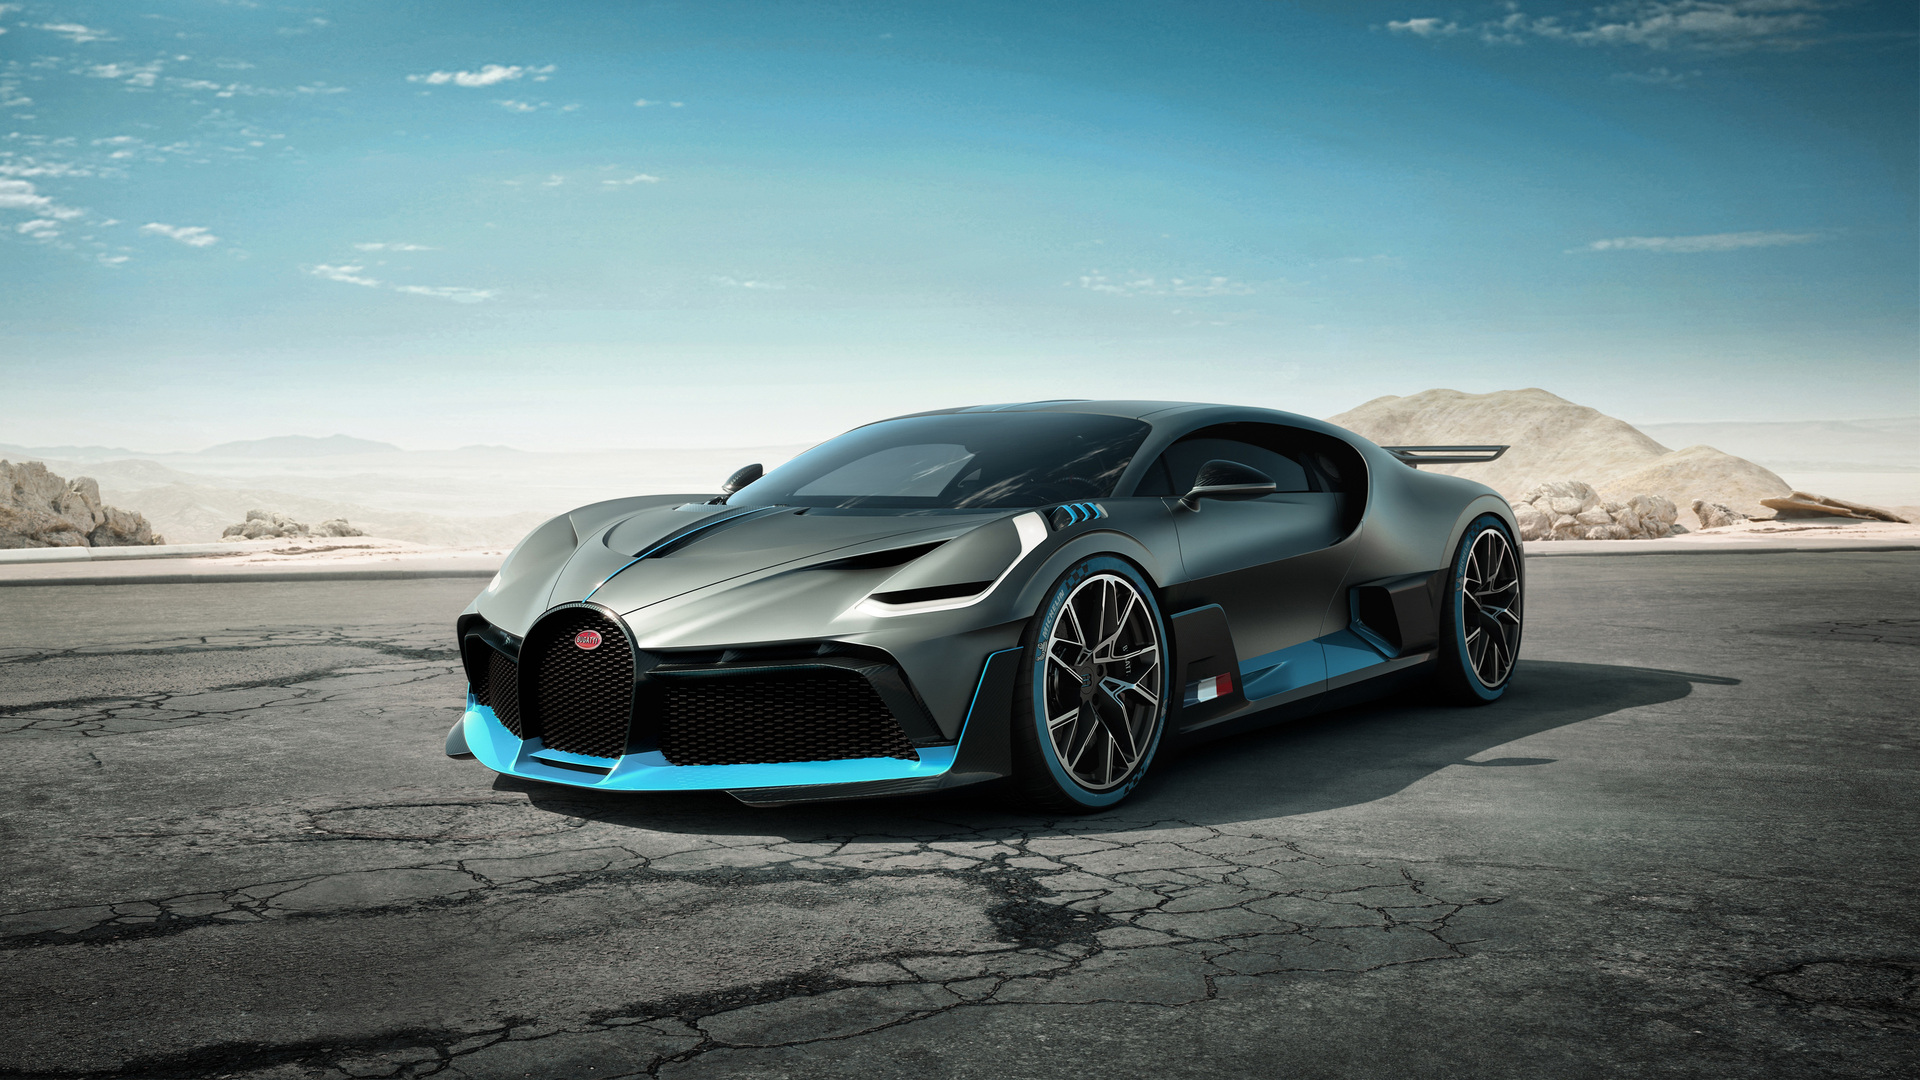 Bugatti Cars Wallpapers 1080p Bugatti Iphone Wallpaper Hd: 1920x1080 2018 Bugatti Divo Laptop Full HD 1080P HD 4k